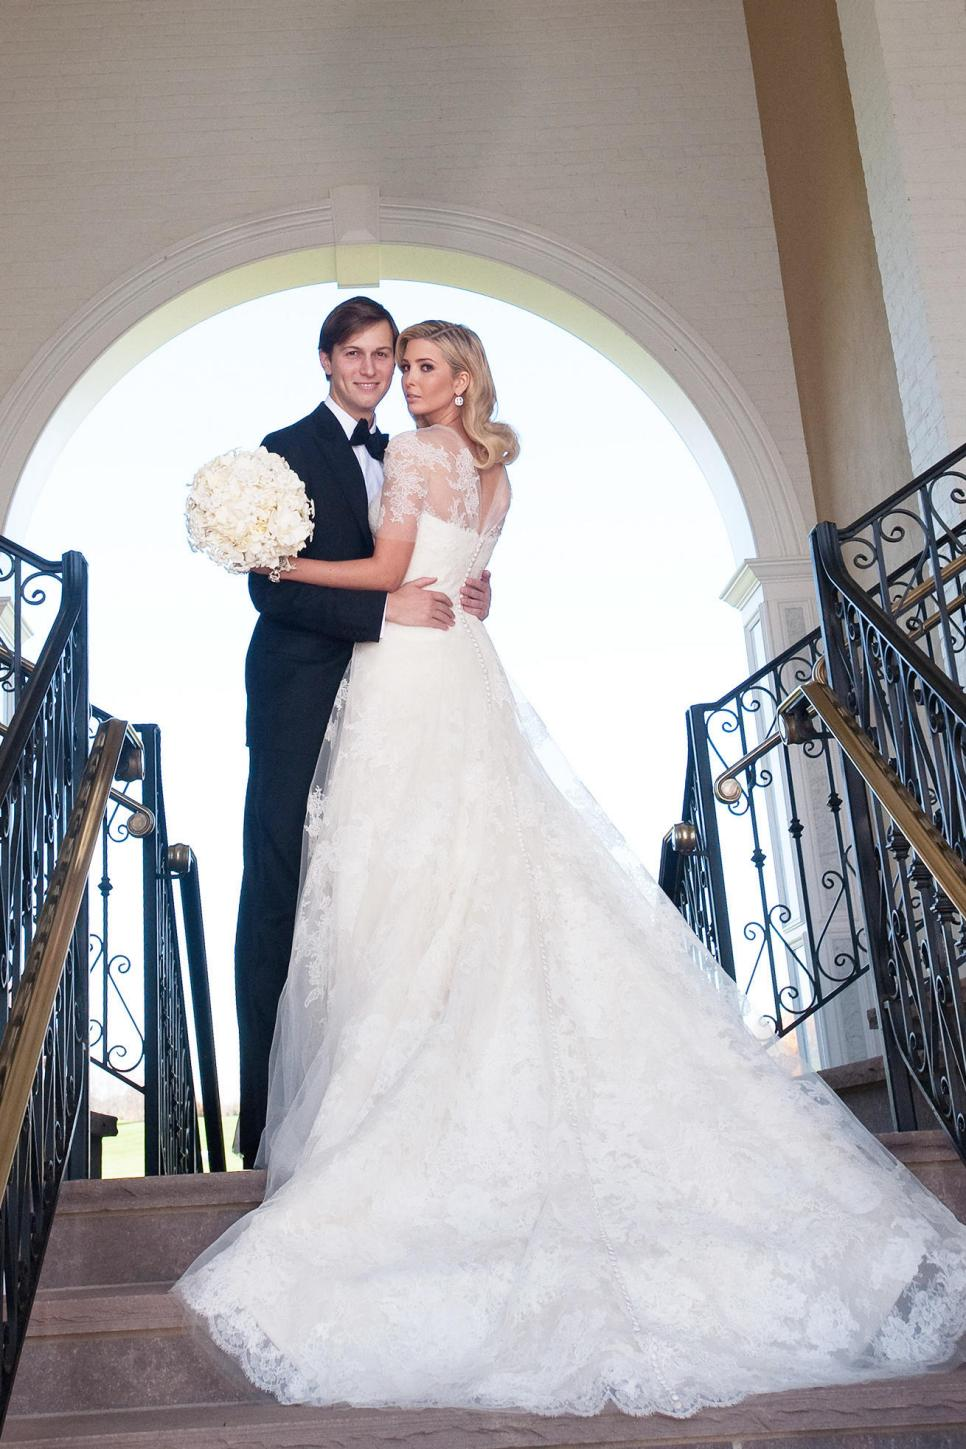 Pnina Tornai S 10 Most Blinged Out Wedding Gowns Life Relationships Tlc Com,Wedding Reception Latest Bridal Dresses 2020